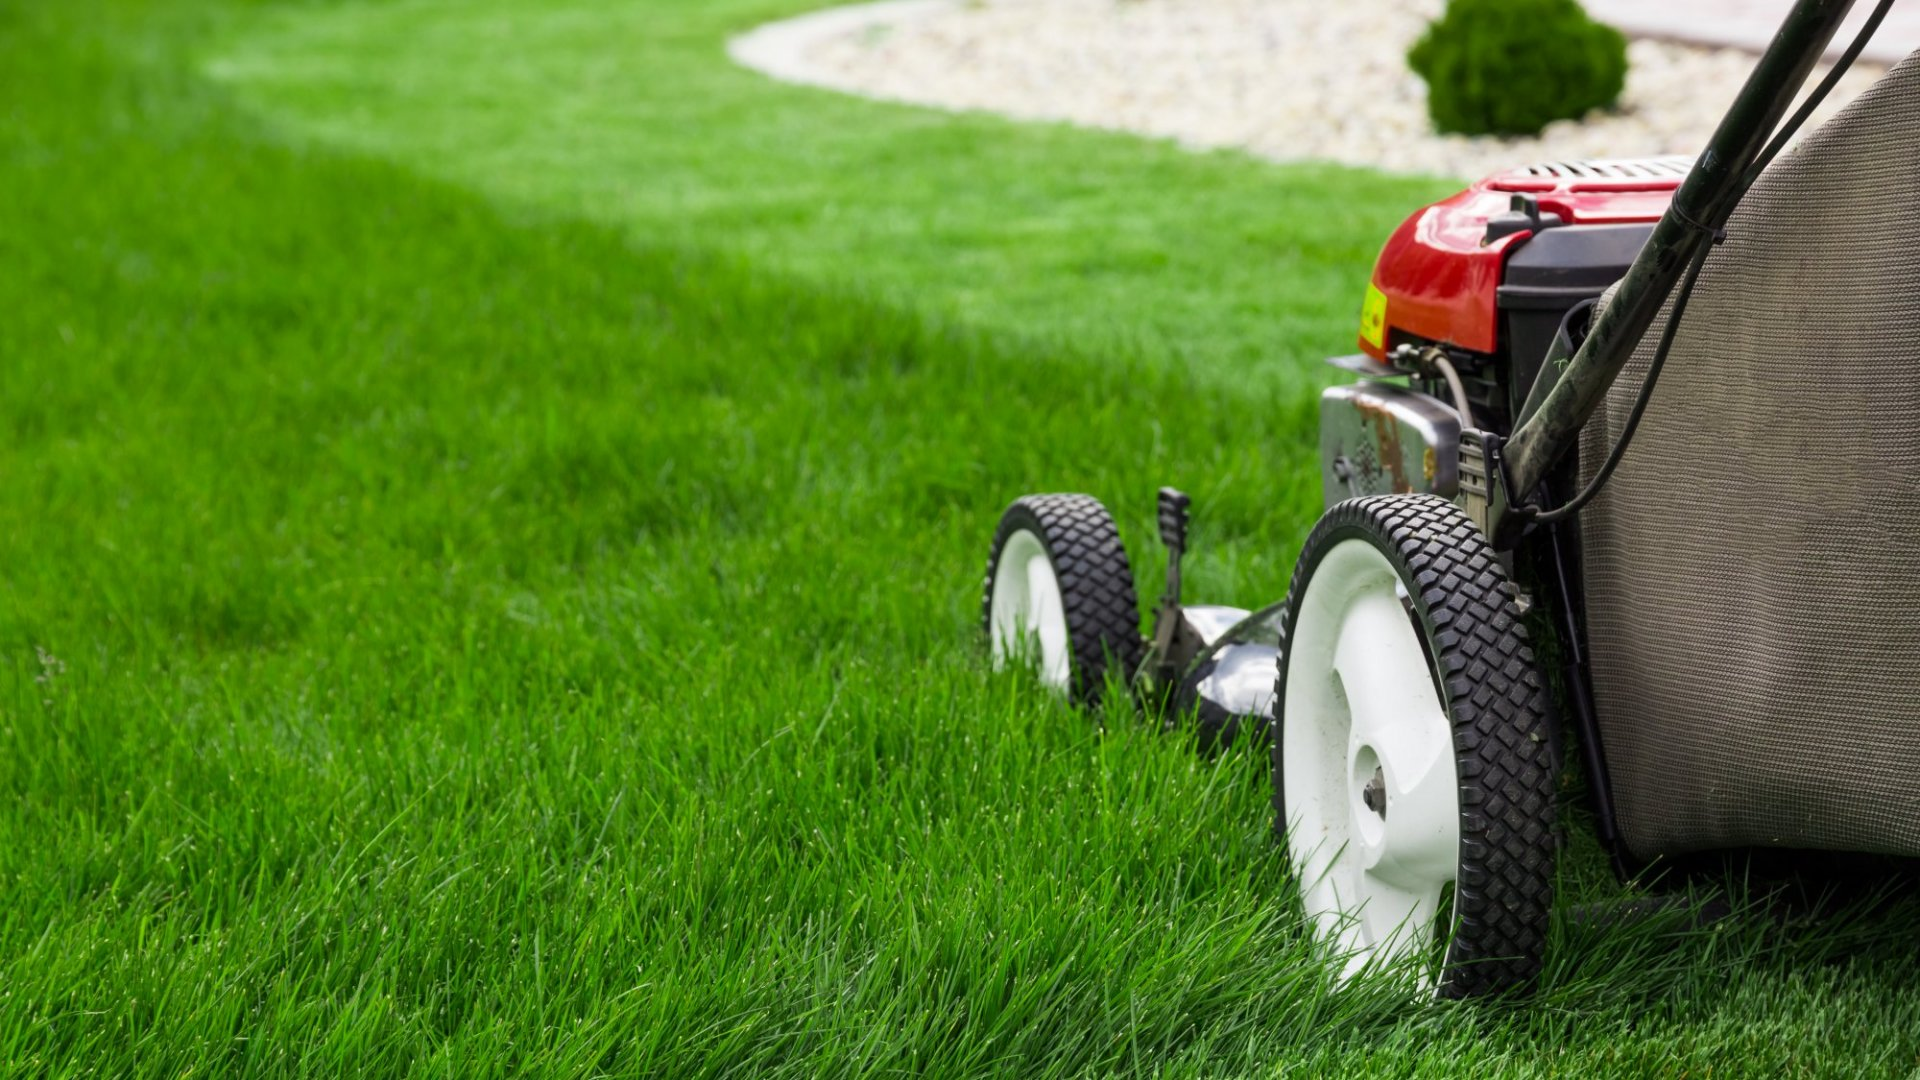 5 Ways Lawnmower Parents Hurt More Than They Help (Even Though Their Hearts Are in the Right Place)